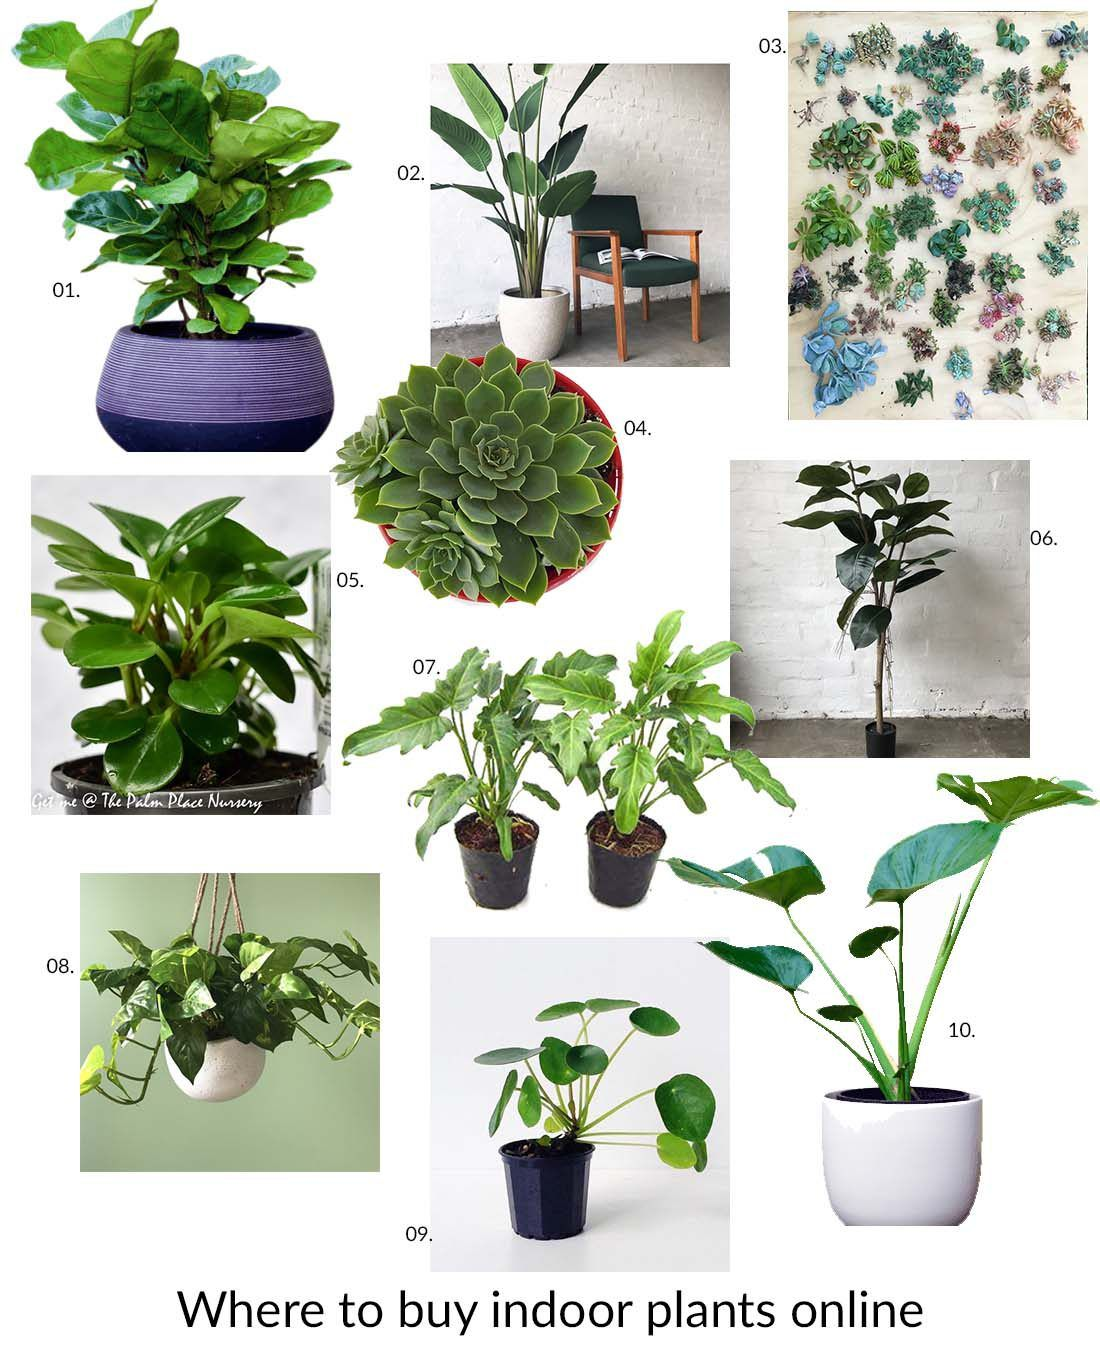 Where To Buy Indoor Plants Online Where To Buy Indoor Plants Online Online Shopping Sources